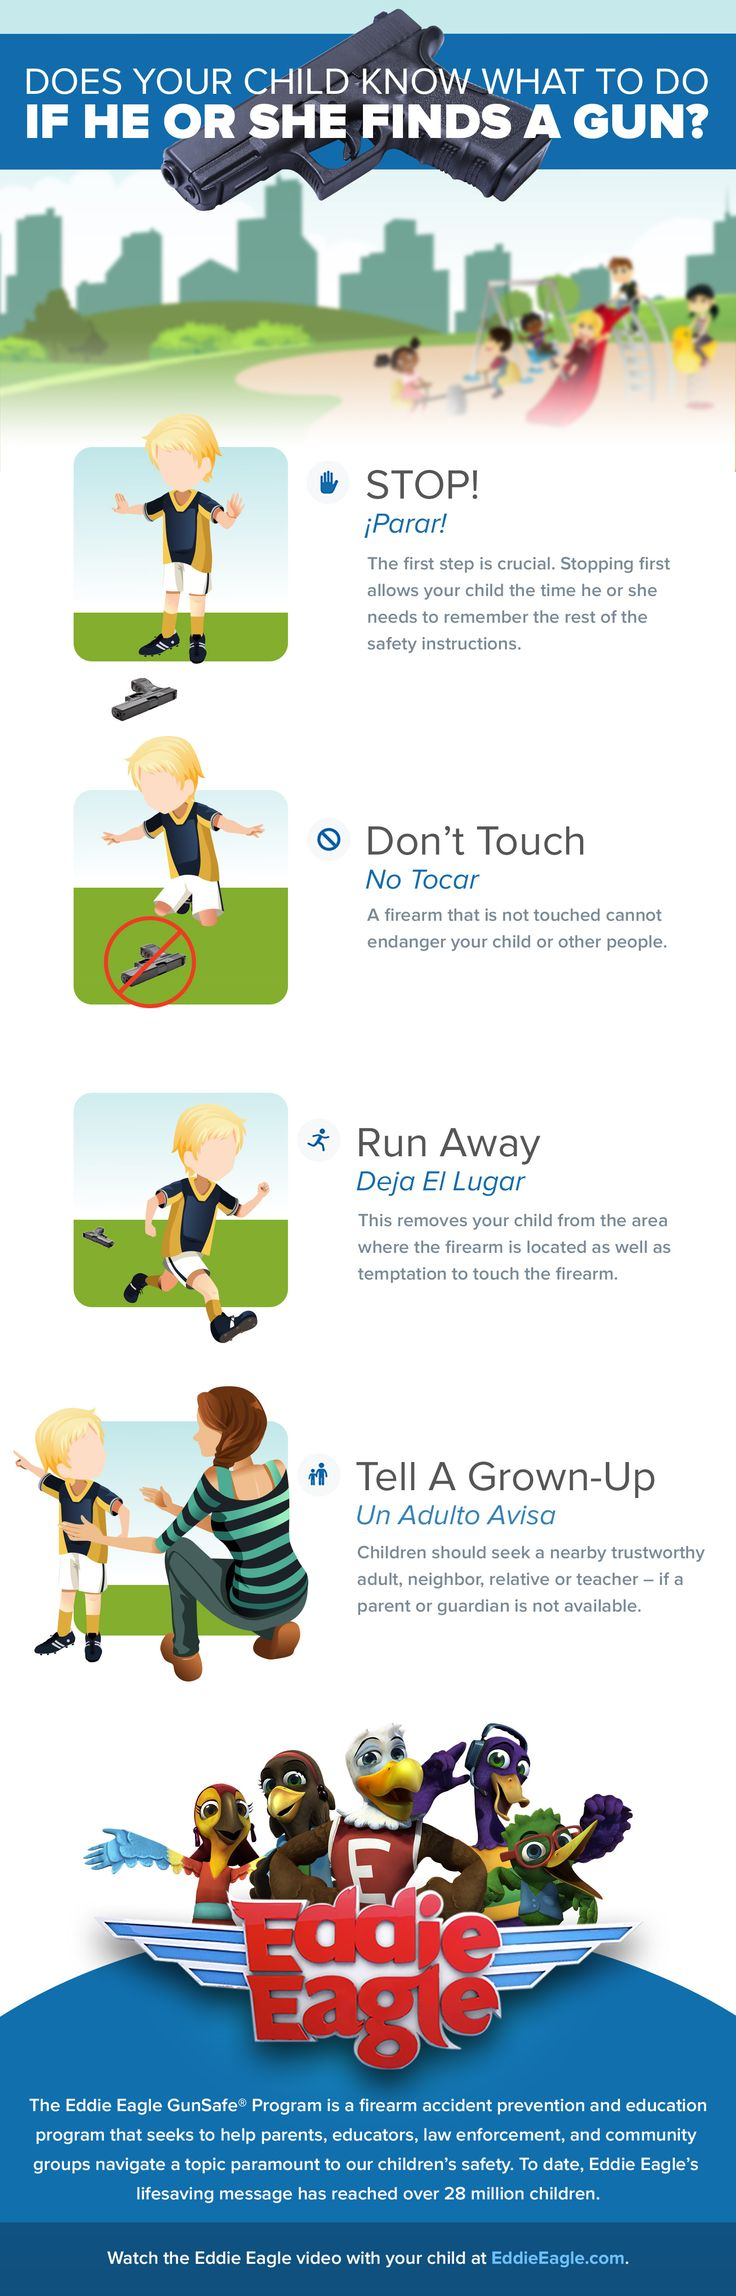 InfoGraphic Teach your kids Eddie Eagle's four steps for